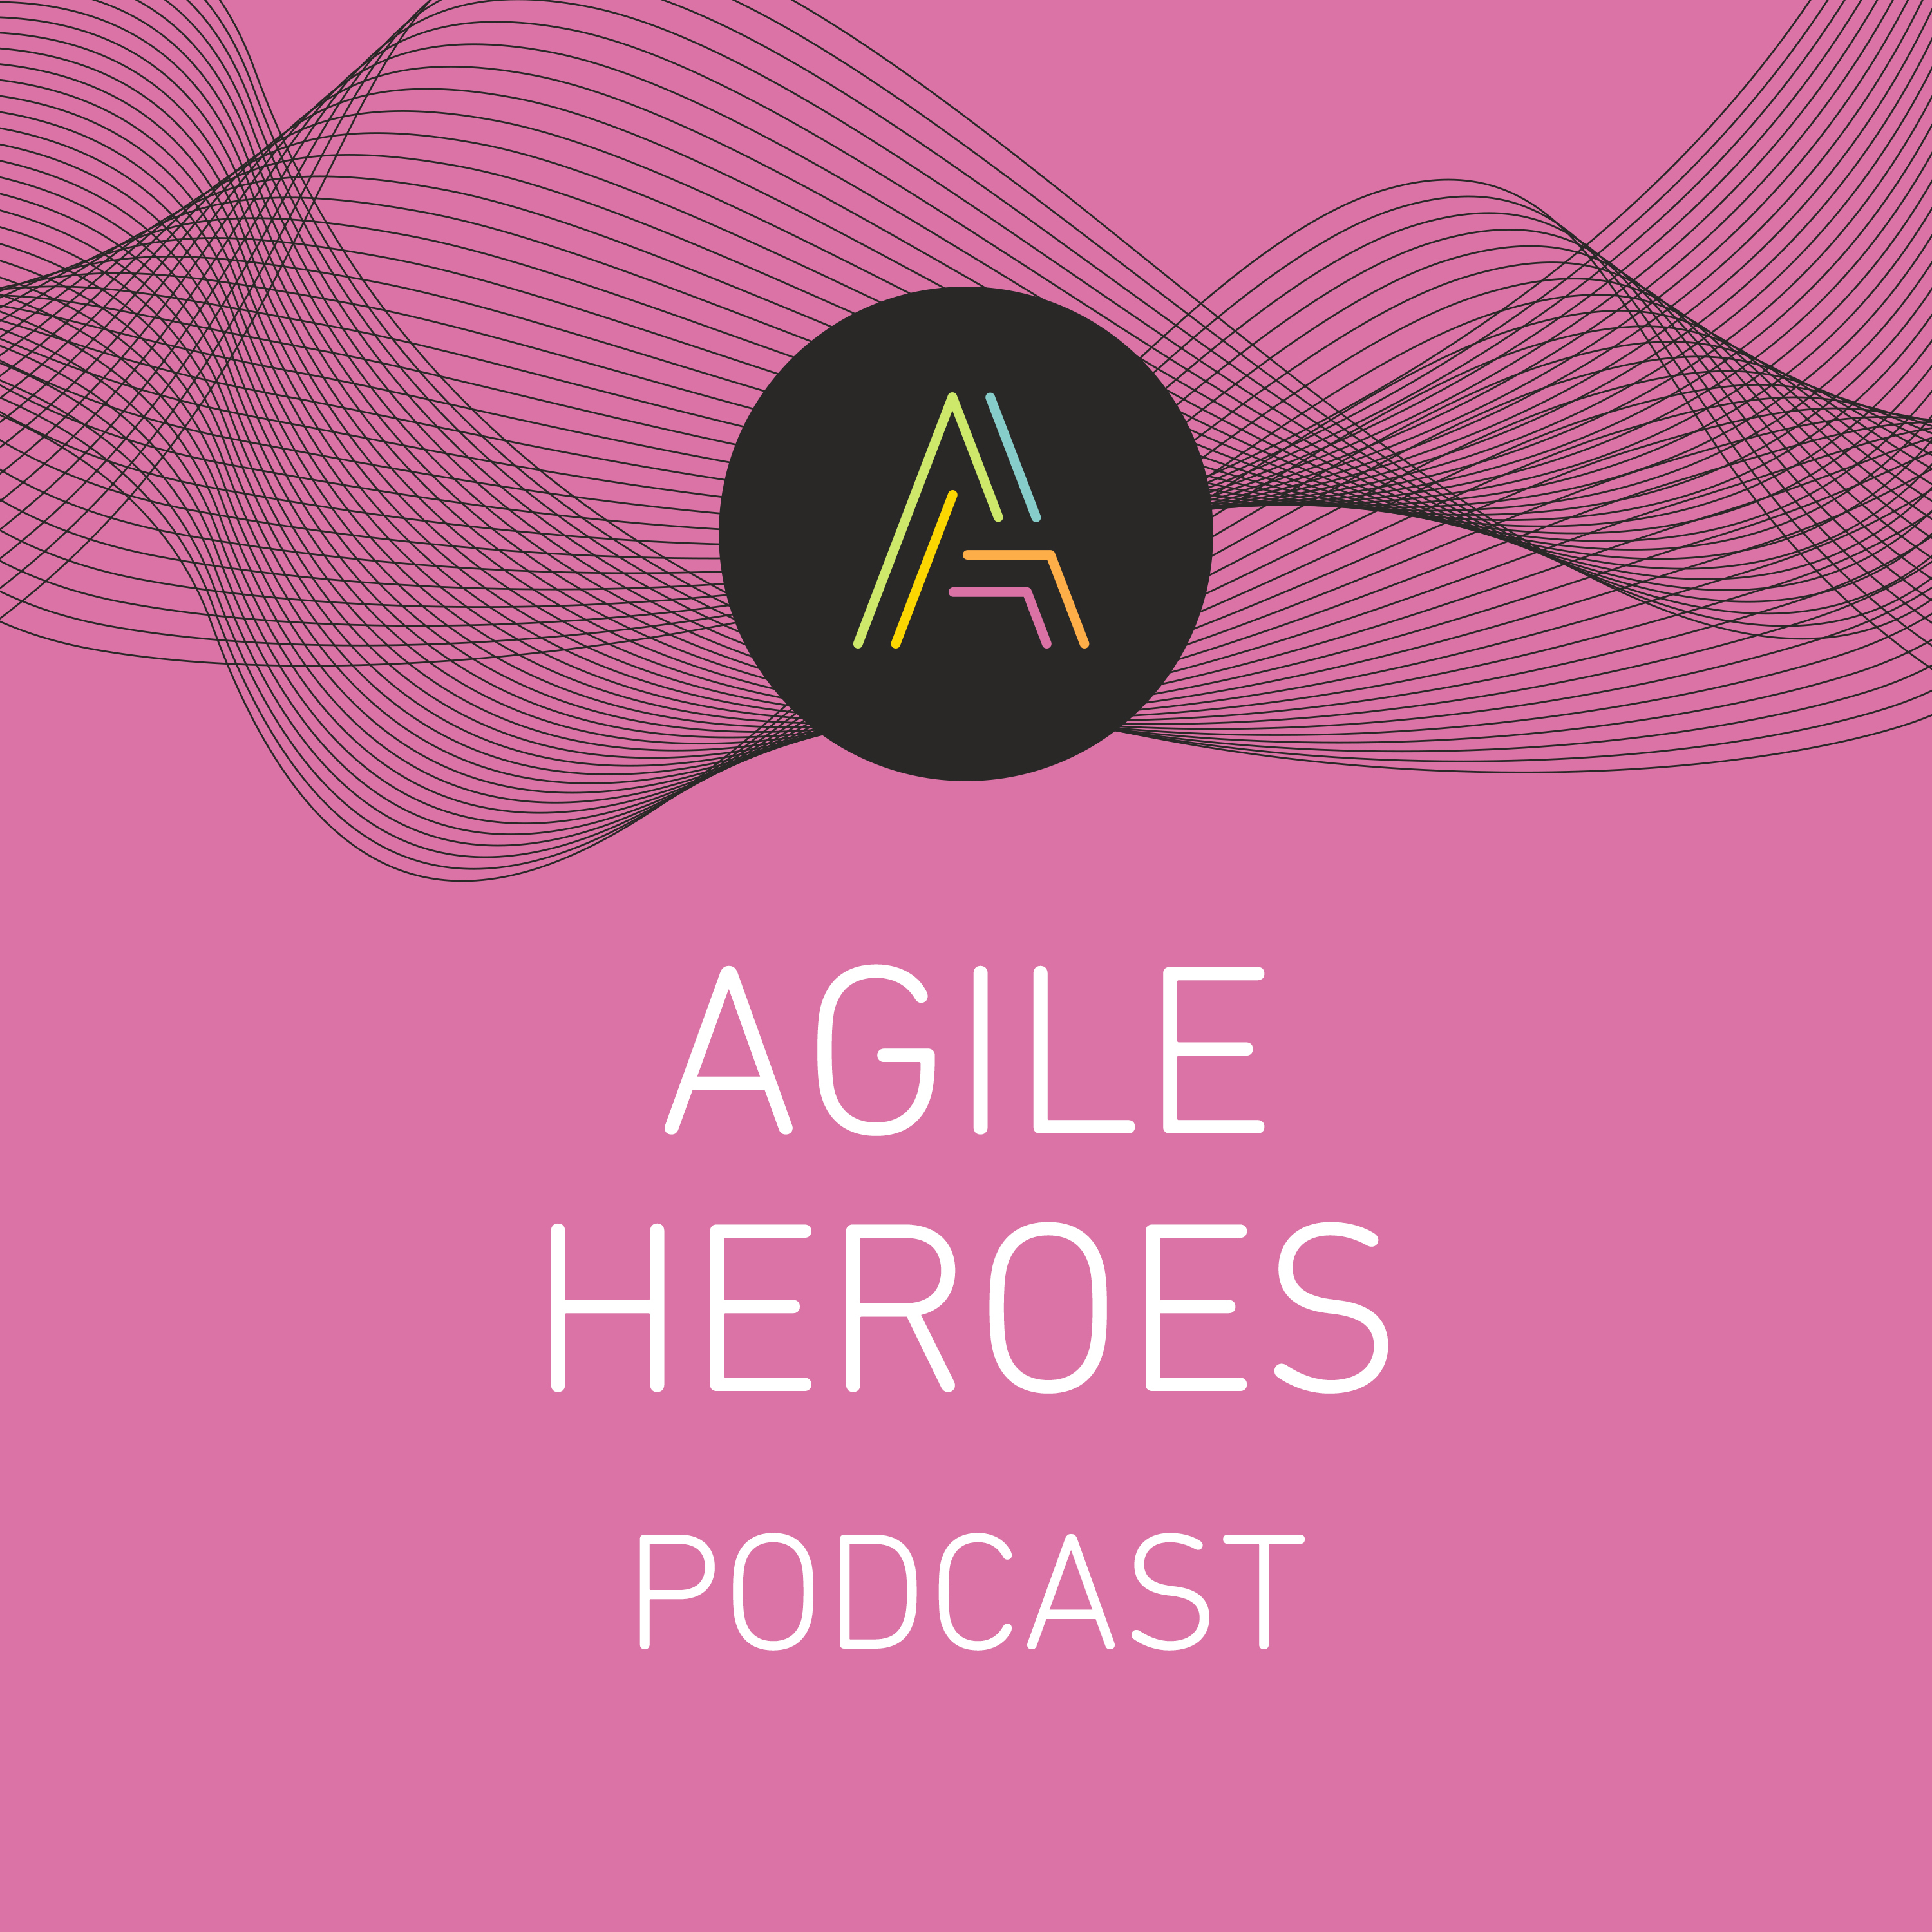 Agile Heroes Podcast Image